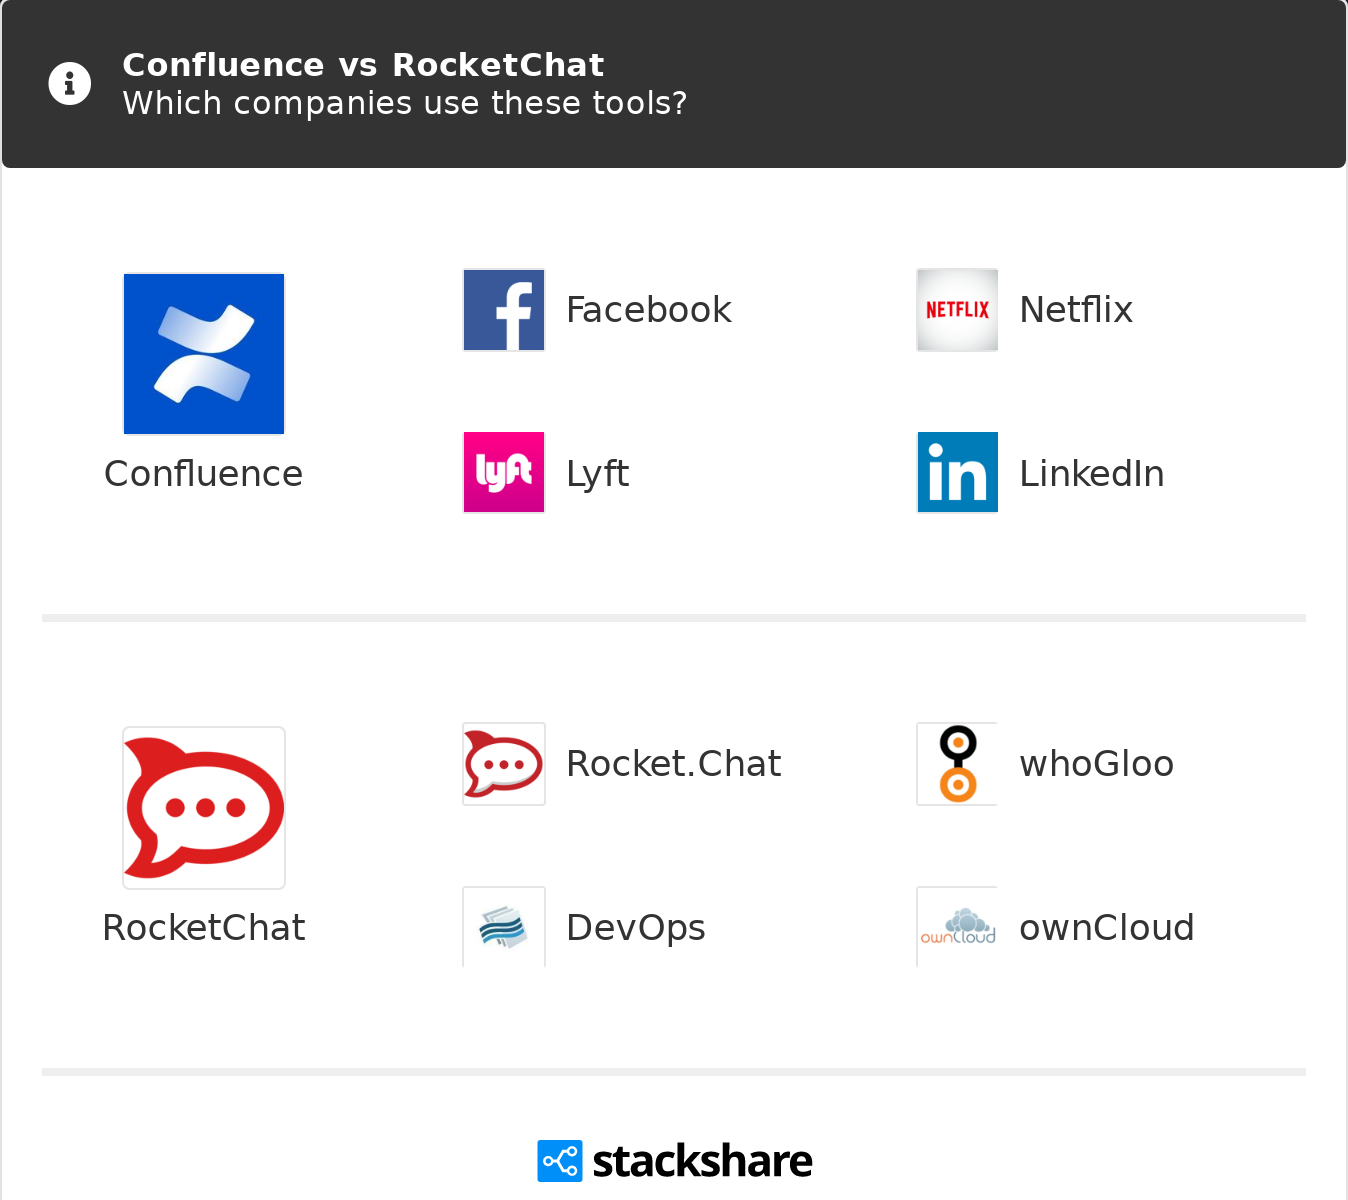 Confluence vs RocketChat | What are the differences?